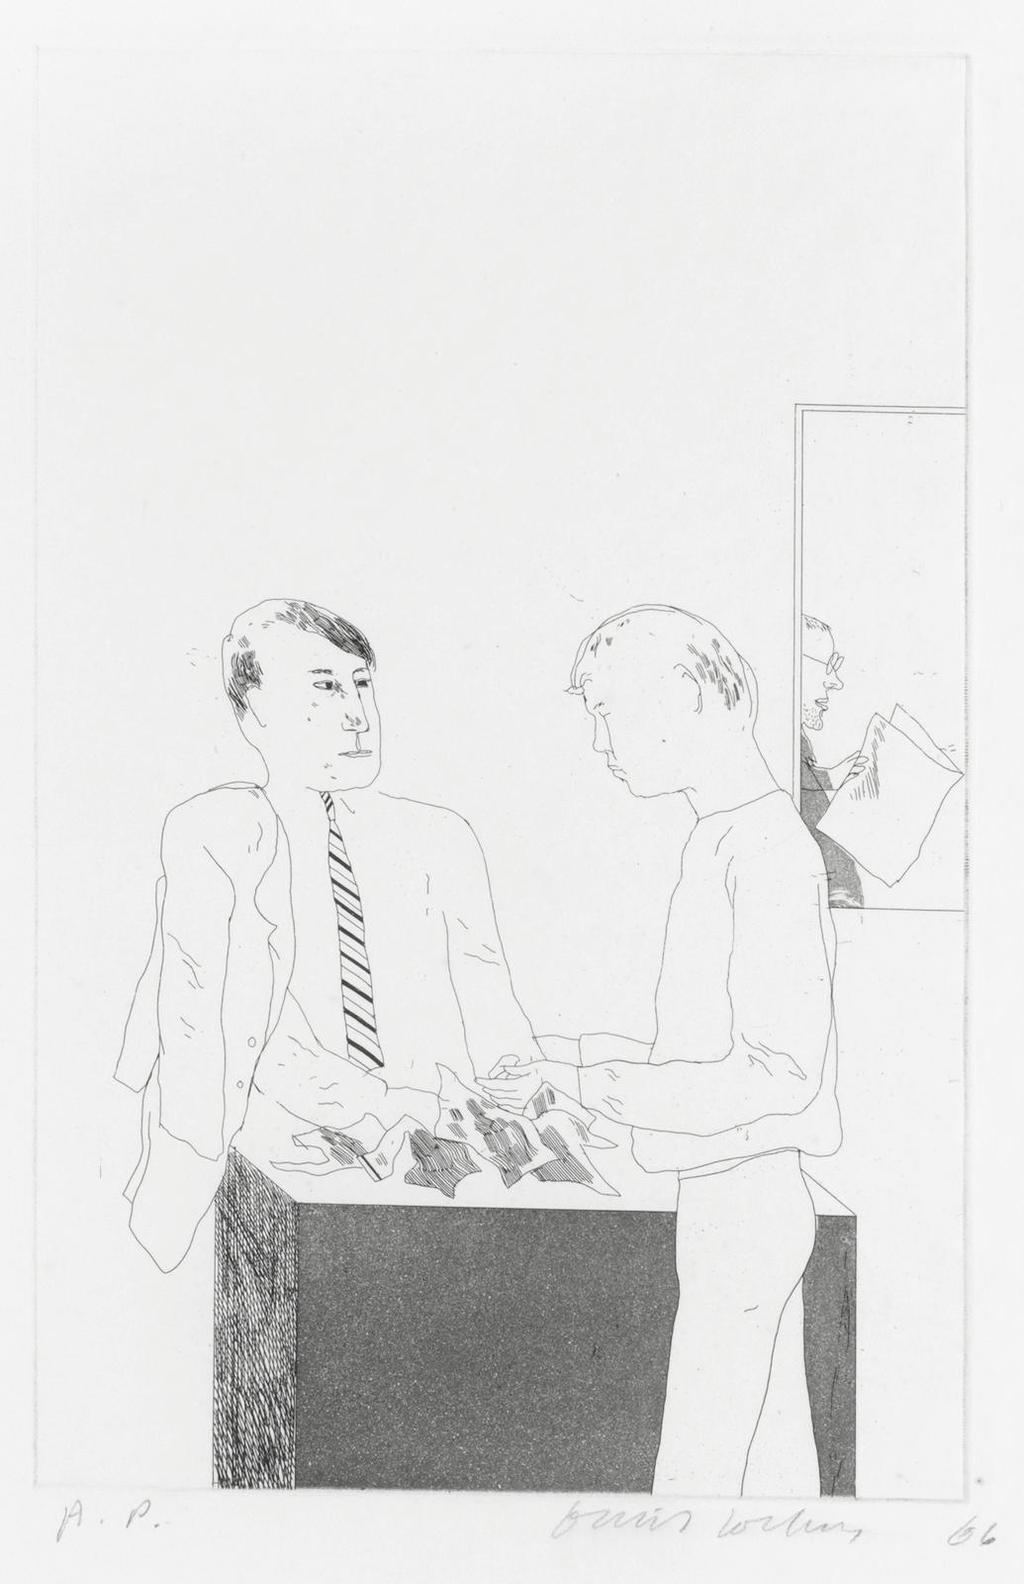 David Hockney-He Enquired After The Quality, From Illustrations For Fourteen Poems From C.P. Cavafy-1966